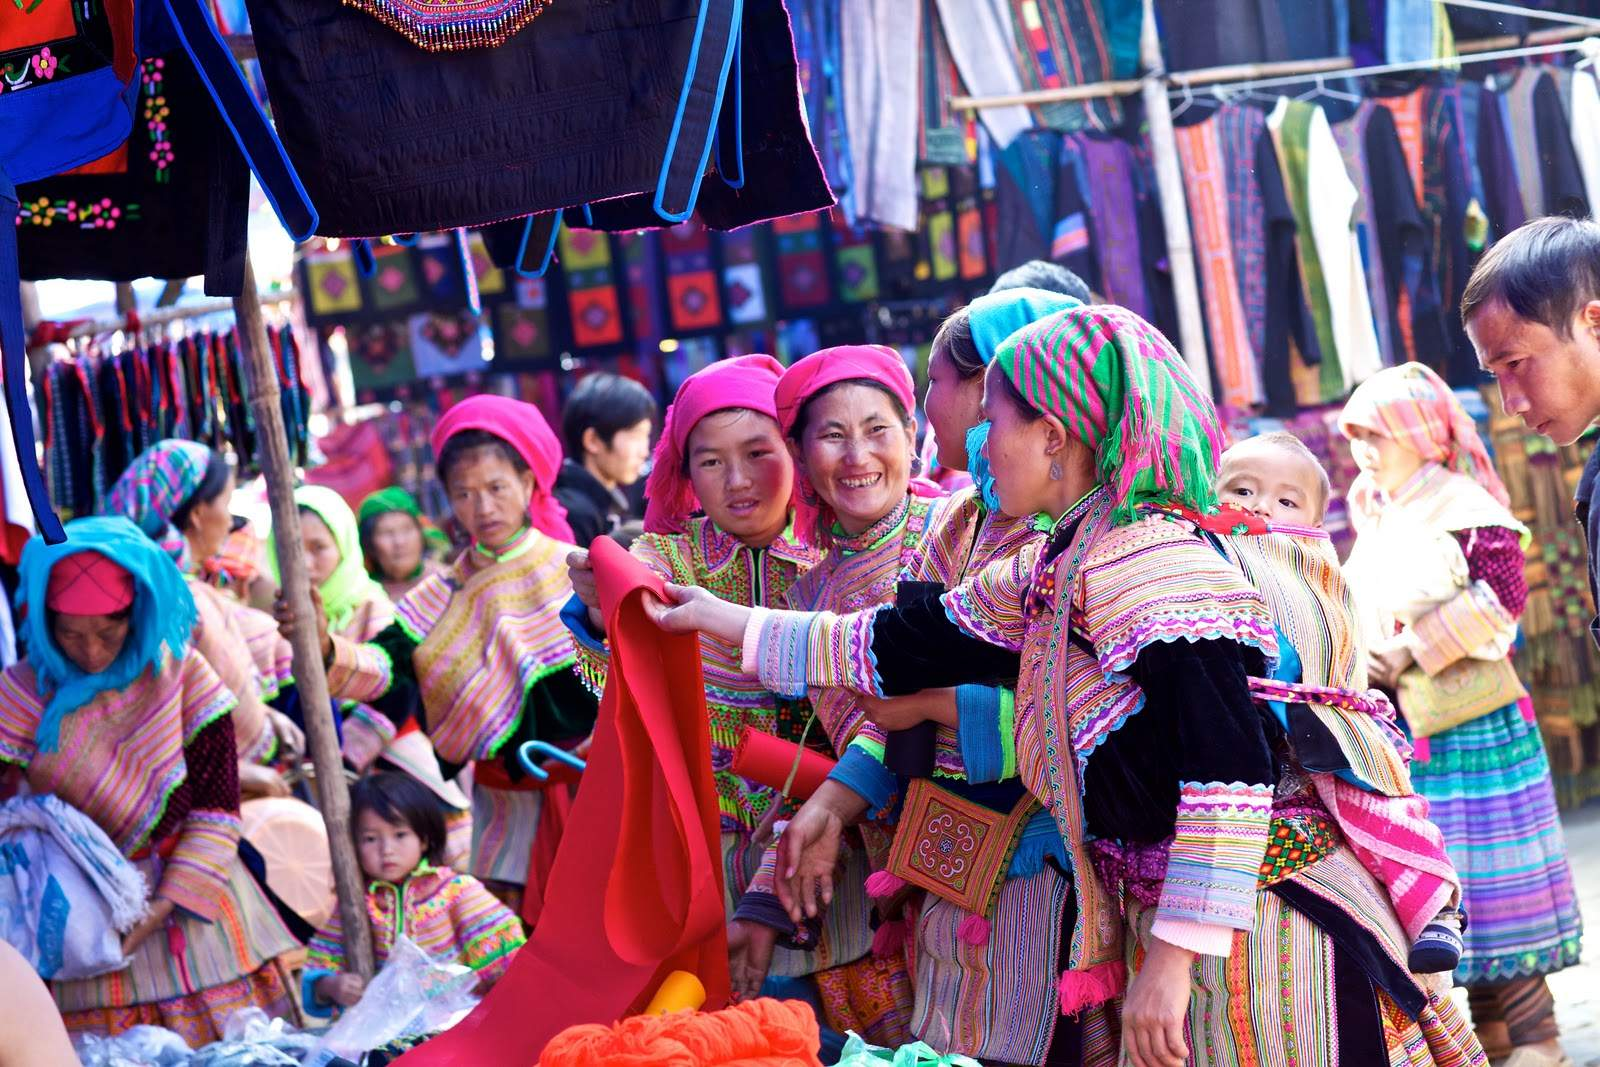 bac ha market - Top 10+ Unique & Amazing Things To Do in Sapa, Vietnam - Updated 2021